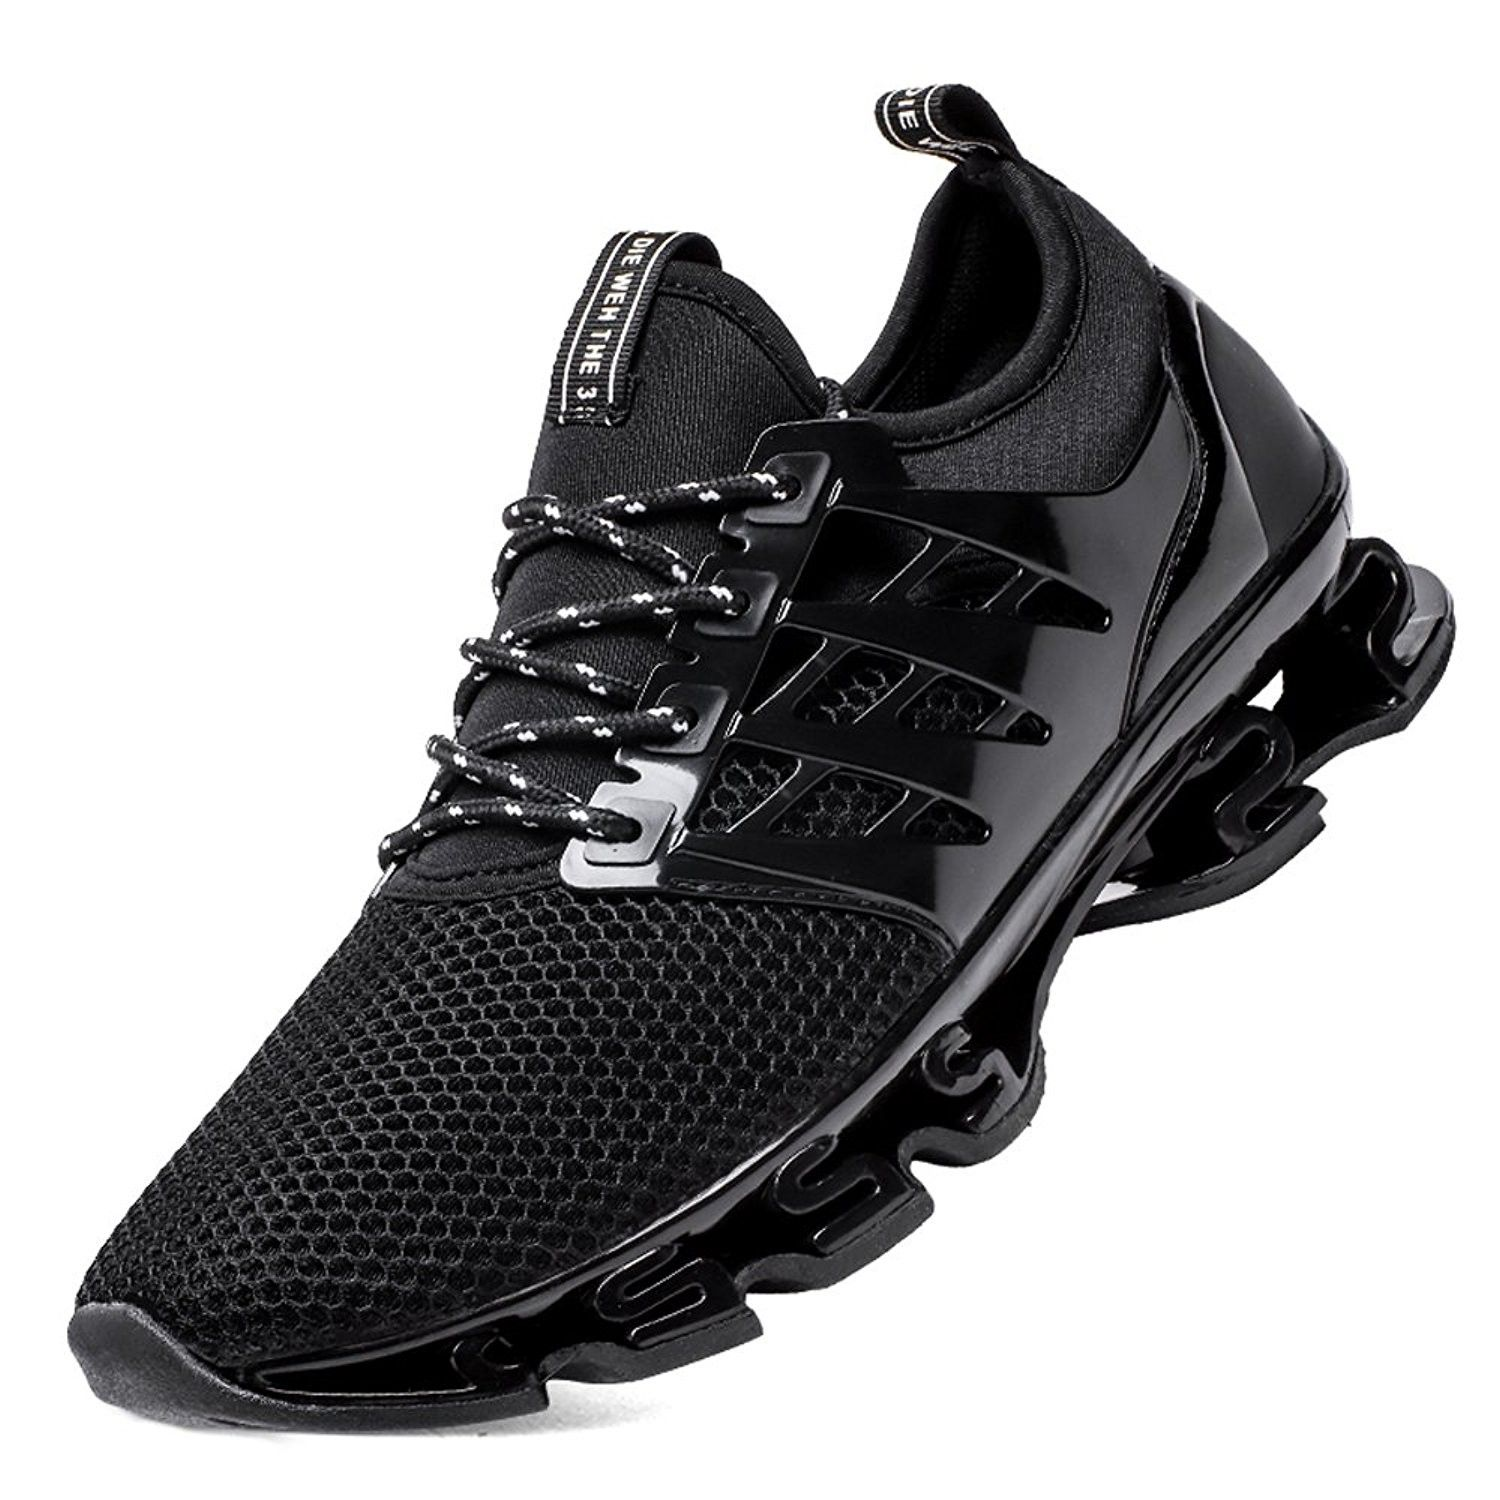 Springblade Sport Running Shoes For Mens Mesh Breathable Trail Runners  Fashion Sneakers - Black - CW1804RR4D7   Running shoes for men, Sport shoes  men, Boys casual shoes